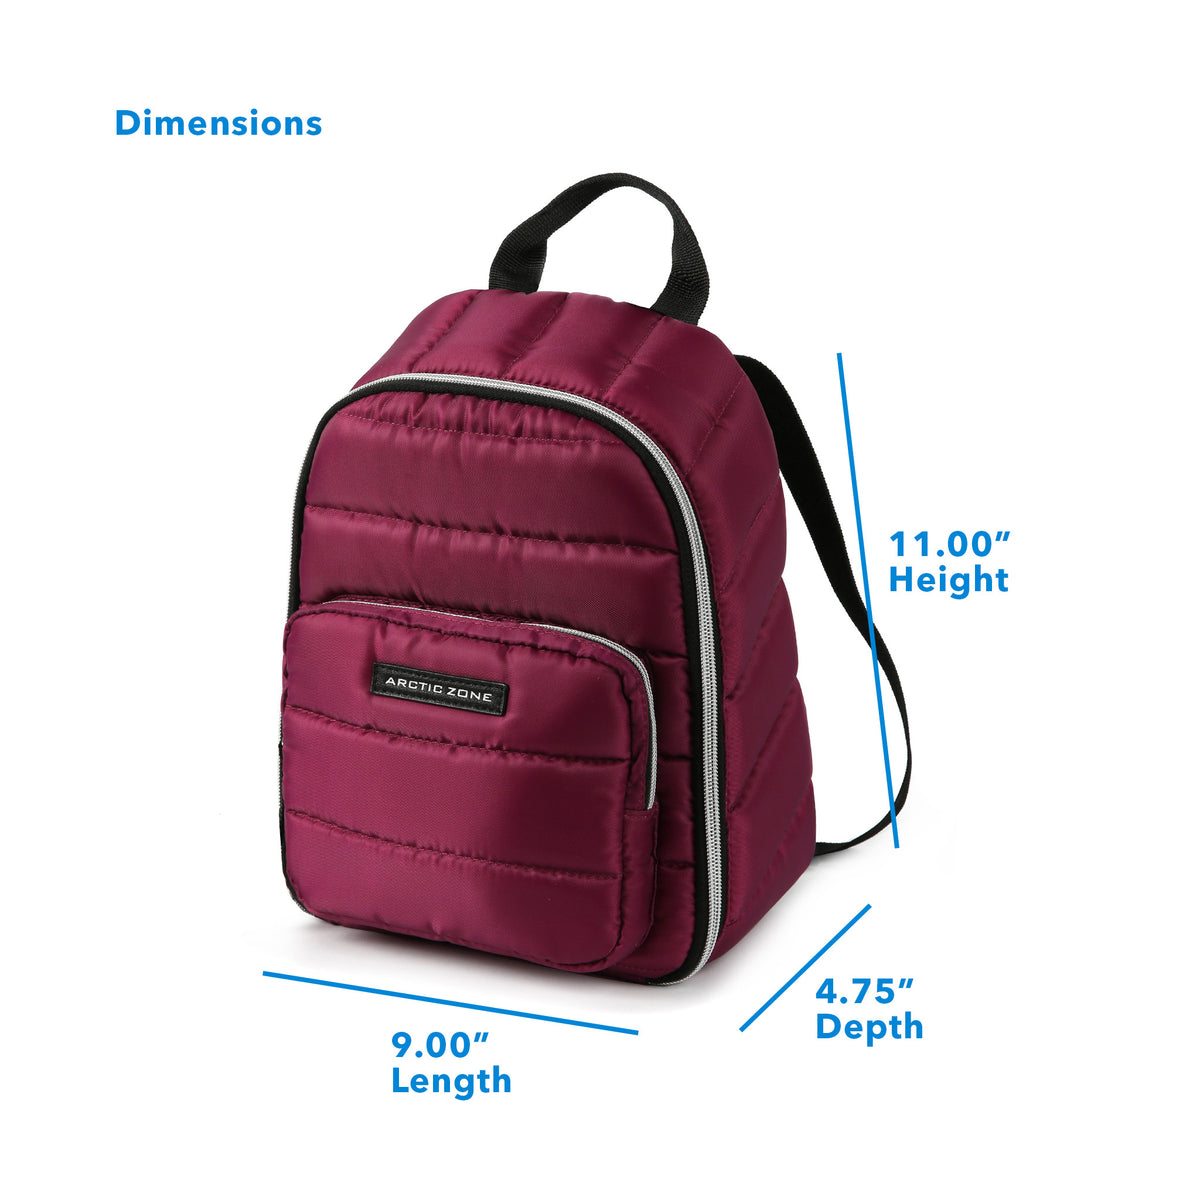 "Arctic Zone® Quilted Cooler Backpack - Red Violet - Dimensions: (L x D x H) 9.00"" x 4.75"" x 11.00"""